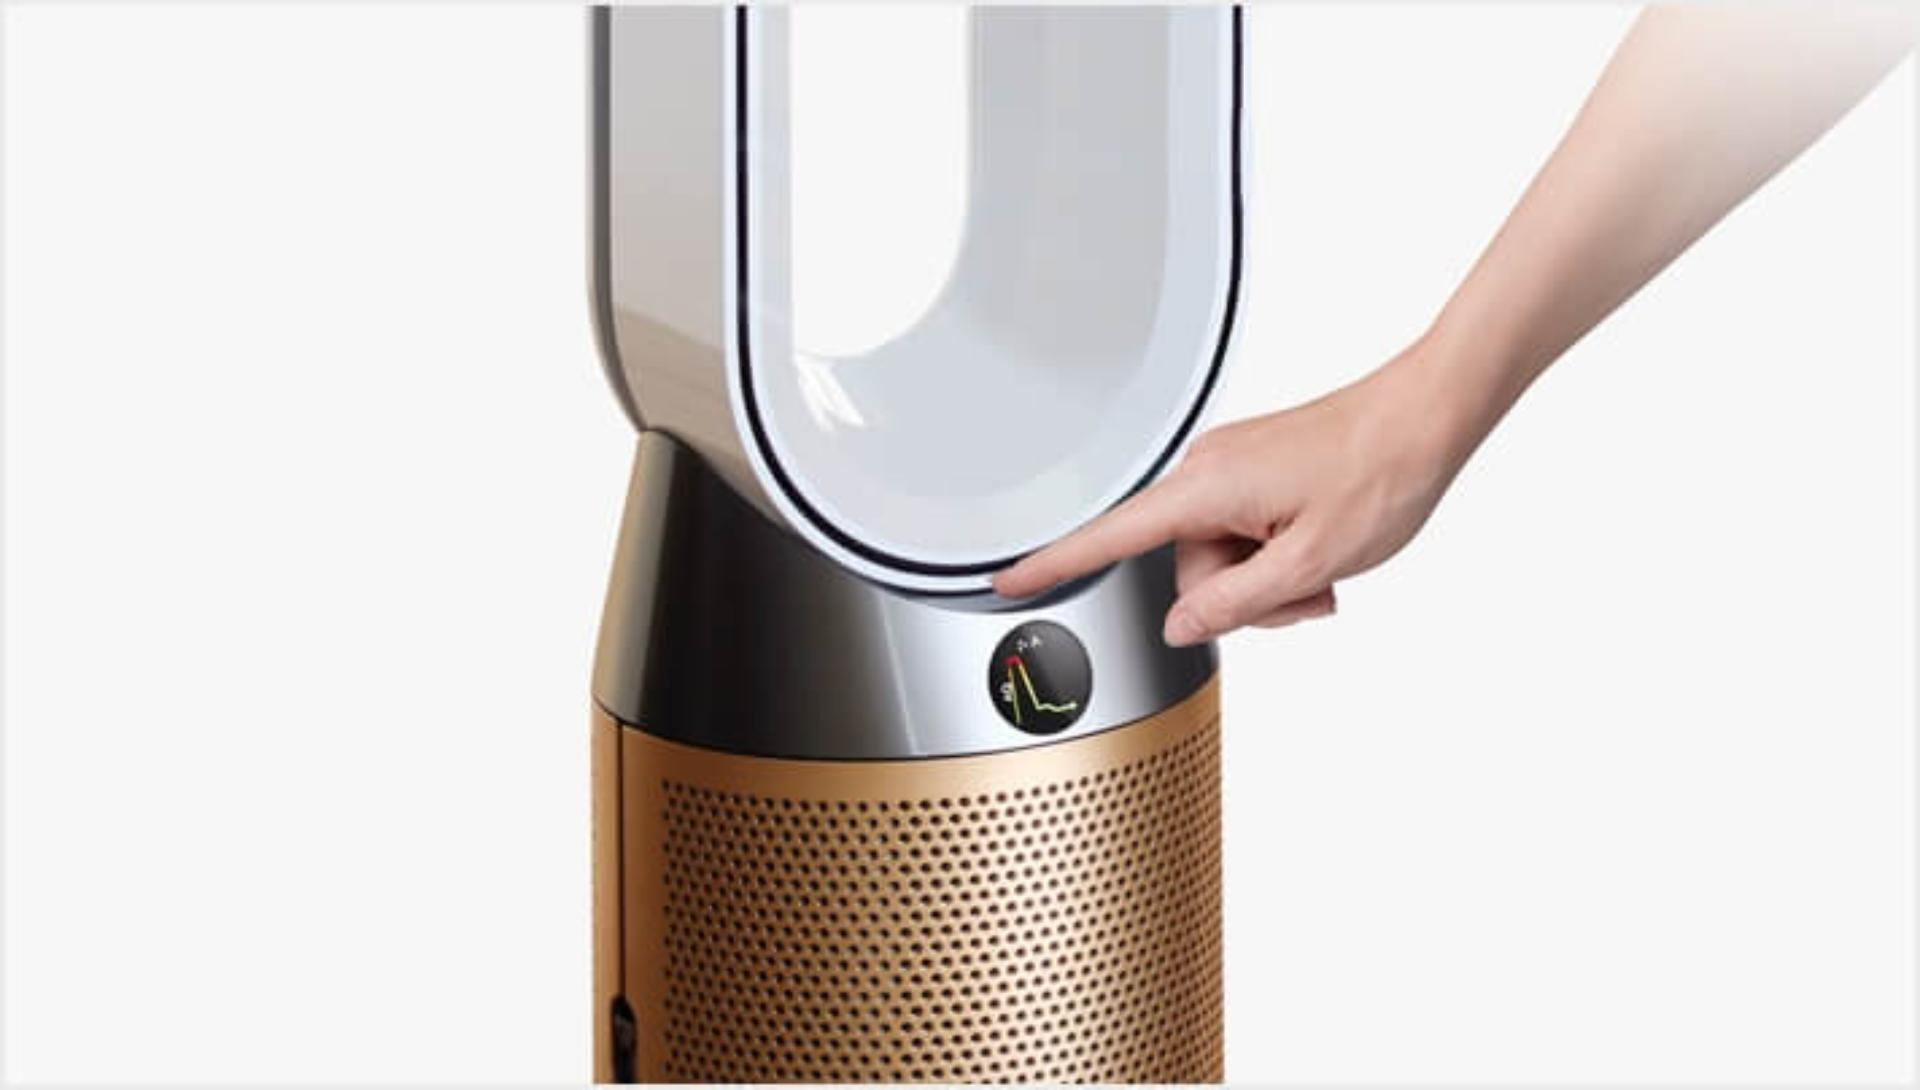 Standby button being pressed on the Dyson Pure Cool Cryptomic air purifier